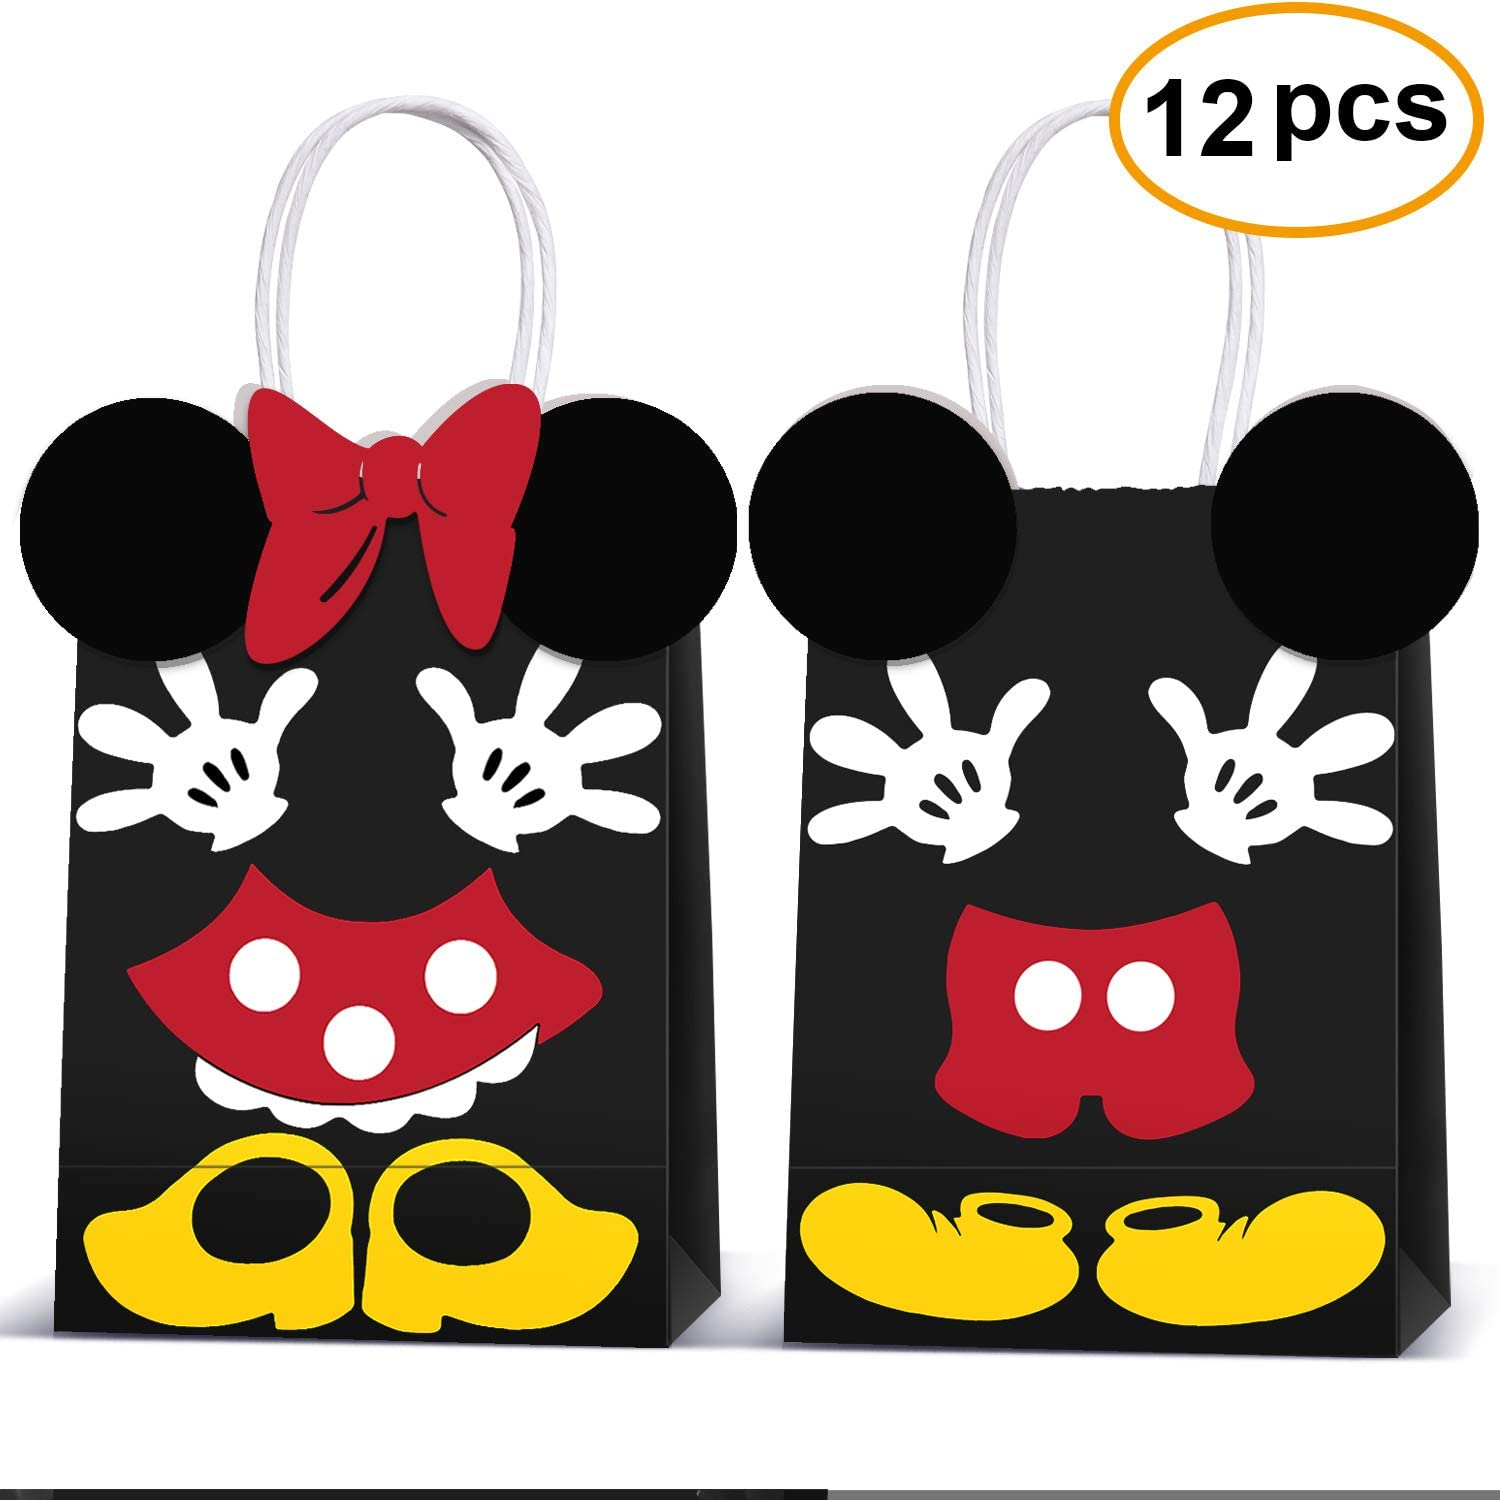 Micky Minnie Party Favor Bags -Micky Minnie Paper Treat Candy Gift Bags for Kids Birthday Micky Minnie Party Supplies -12 Piece (Yellow)